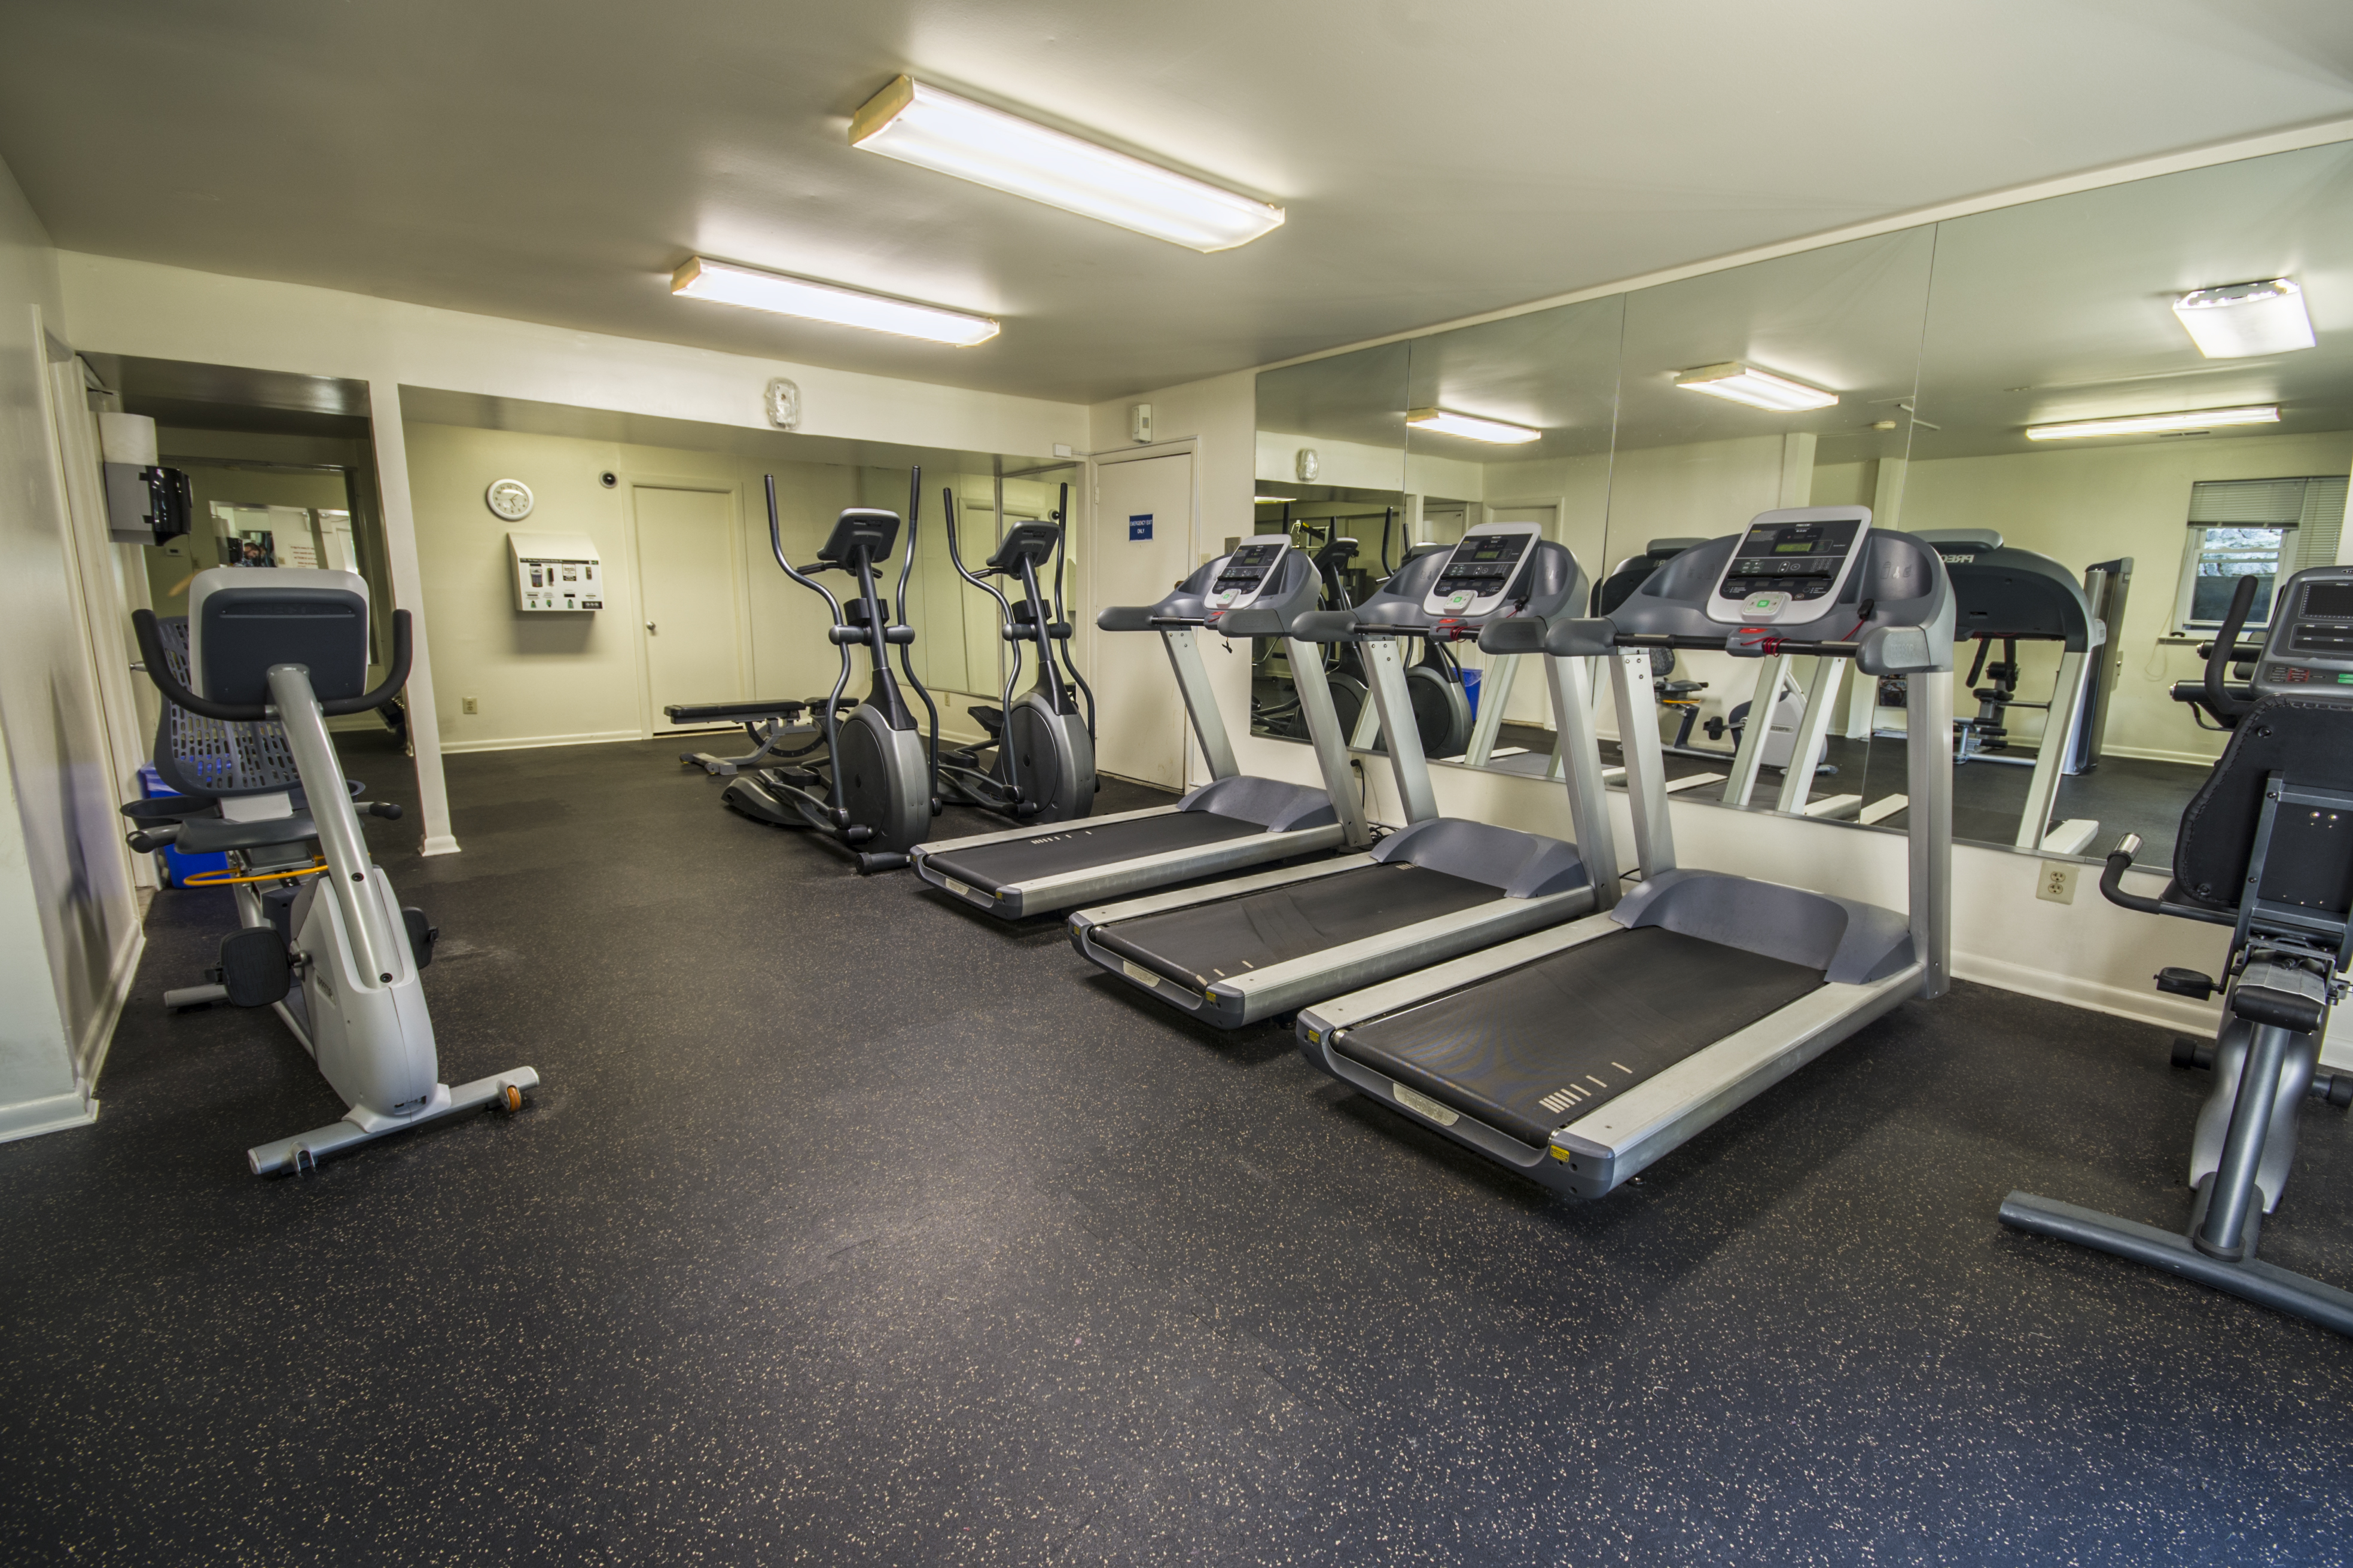 Fitness center with treadmills, ellipitcals, stationary bike, and free weights